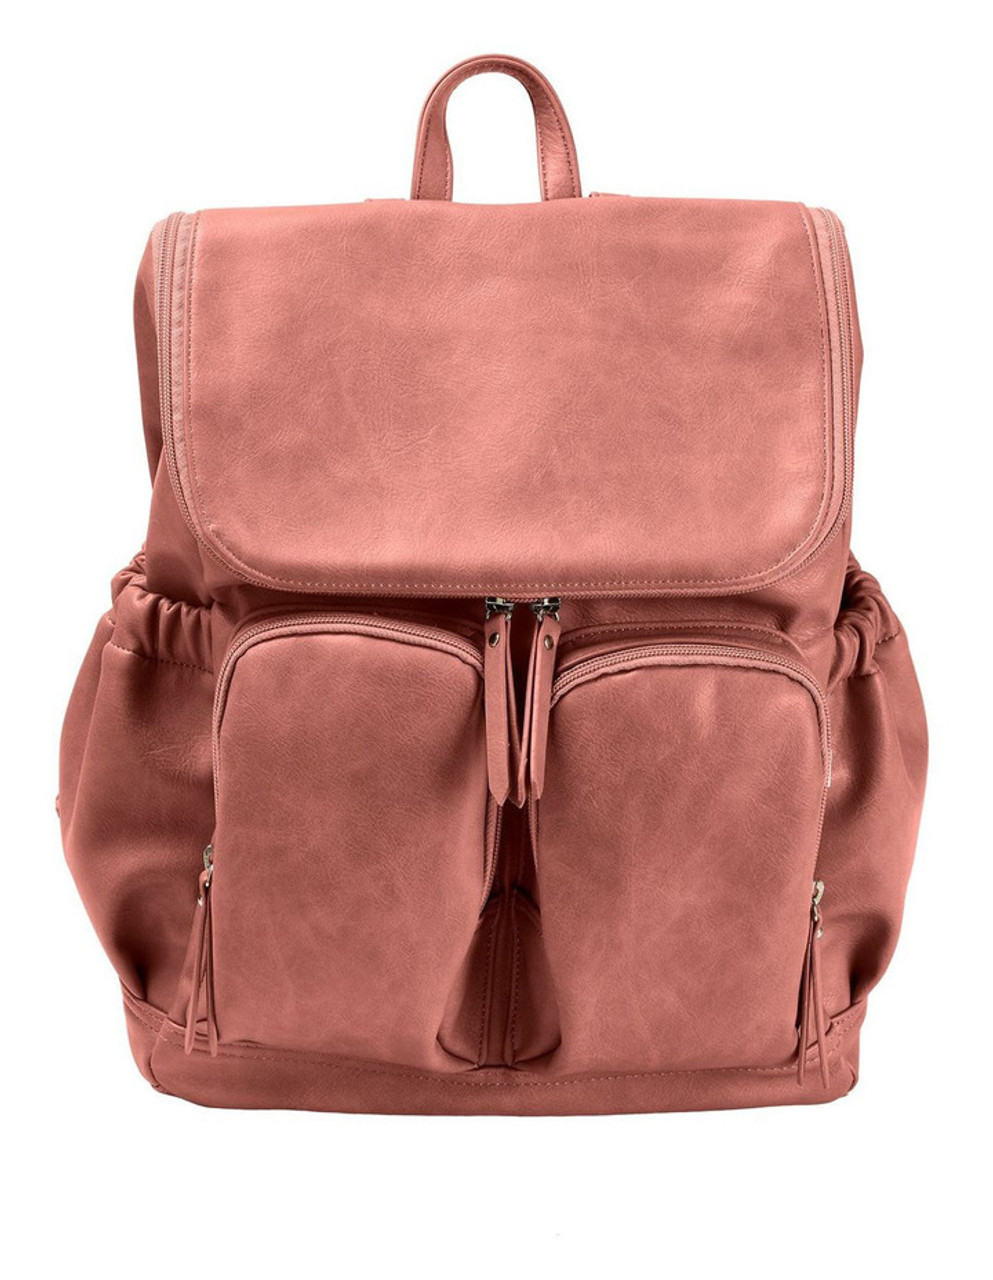 OiOi Faux Leather Nappy Backpack DUSTY ROSE at Baby Barn Discounts